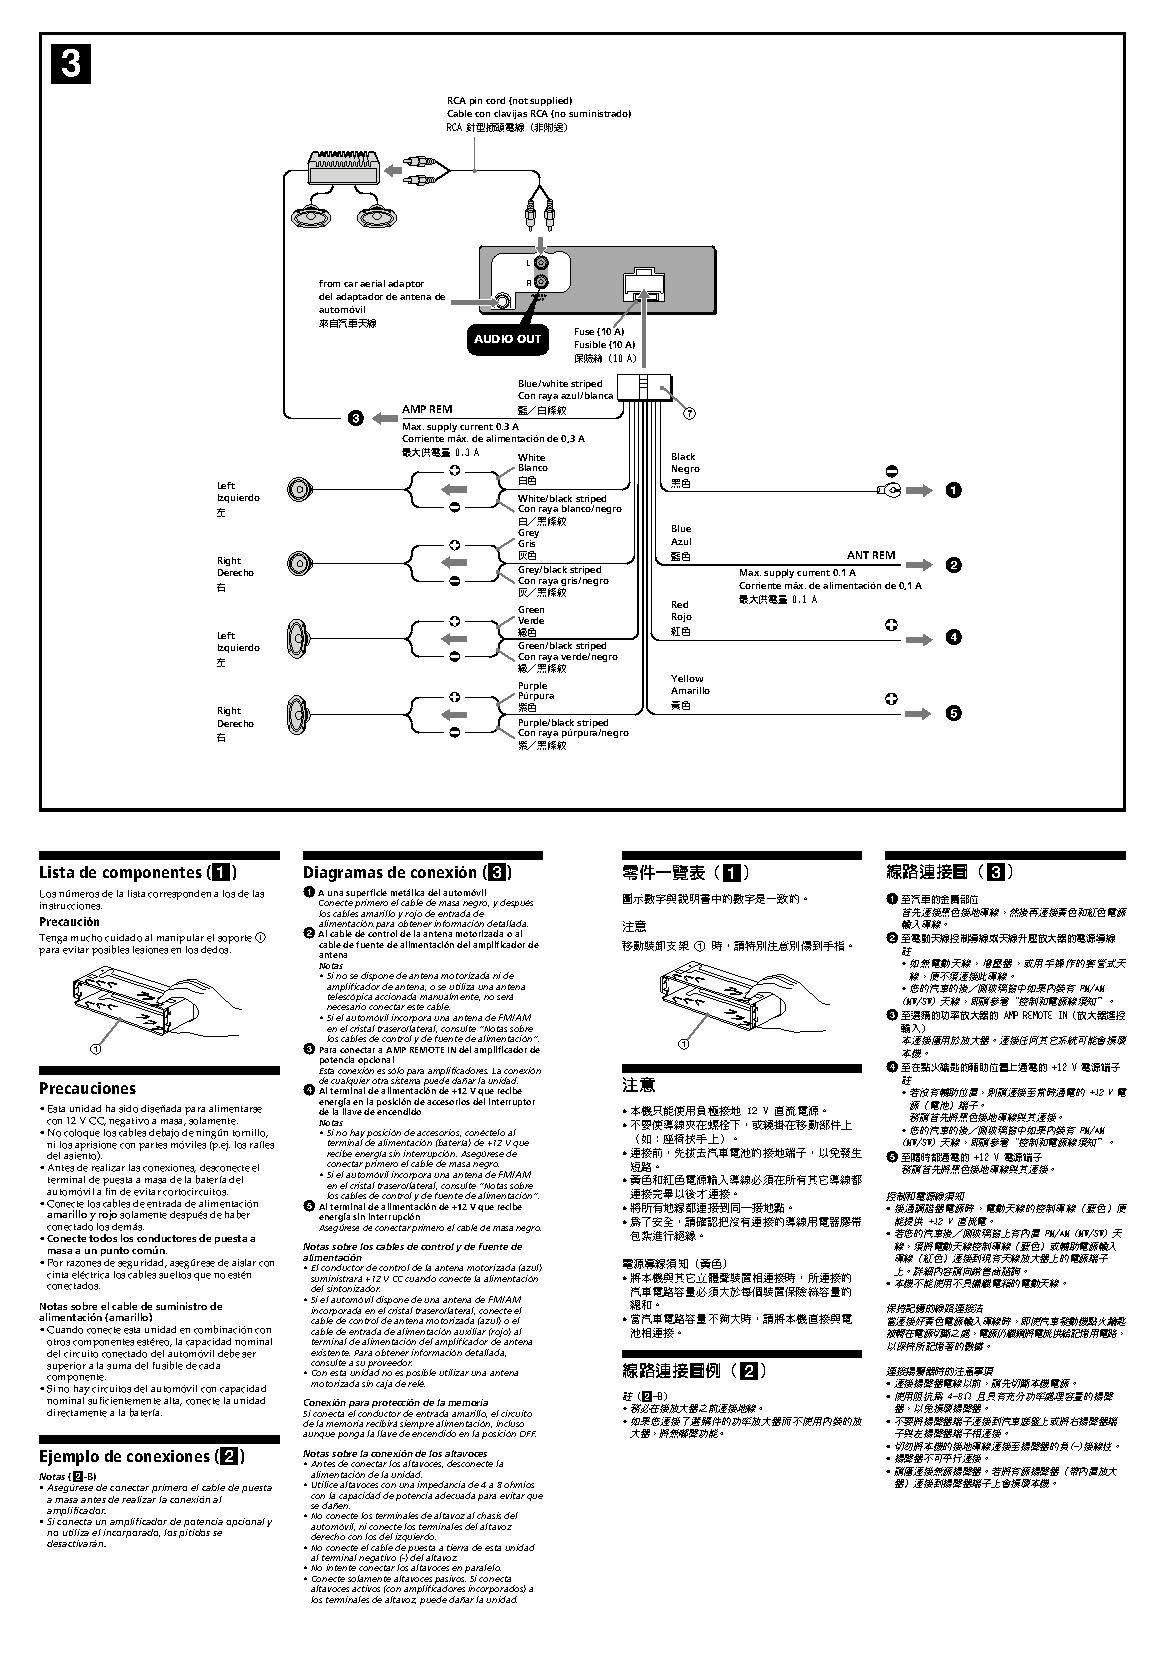 wiring diagram sony xplod 52wx4 65 mustang manual car cd player awesome